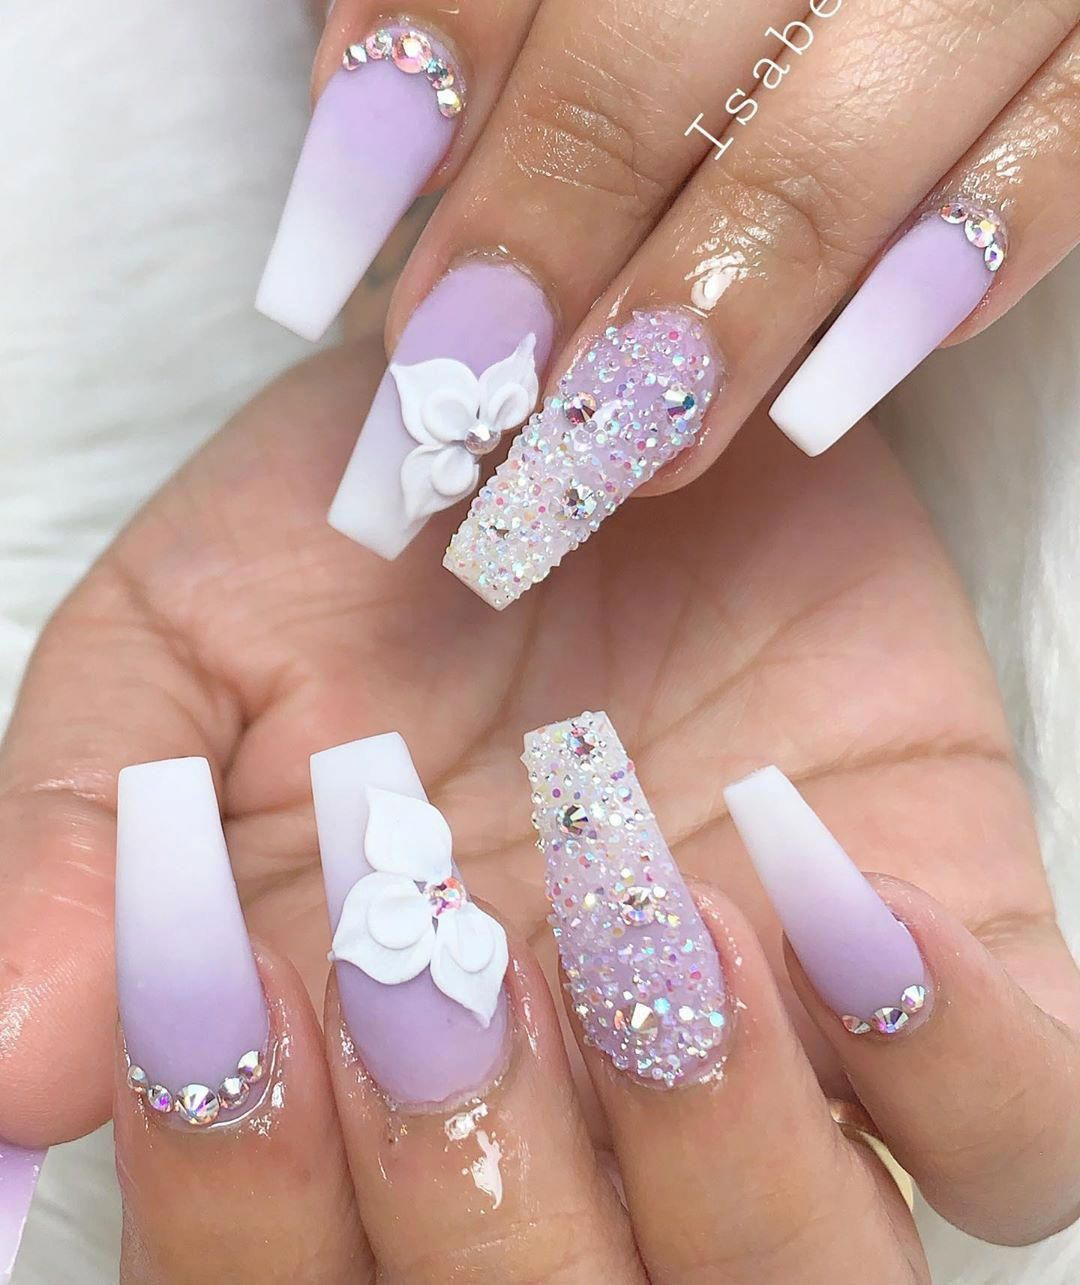 Such A Cute Purple Ombre Coffin Nails With Glitter And Rhinestones Design For Summer 2019 In 2020 Nails Design With Rhinestones Purple Ombre Nails Shiny Nails Designs